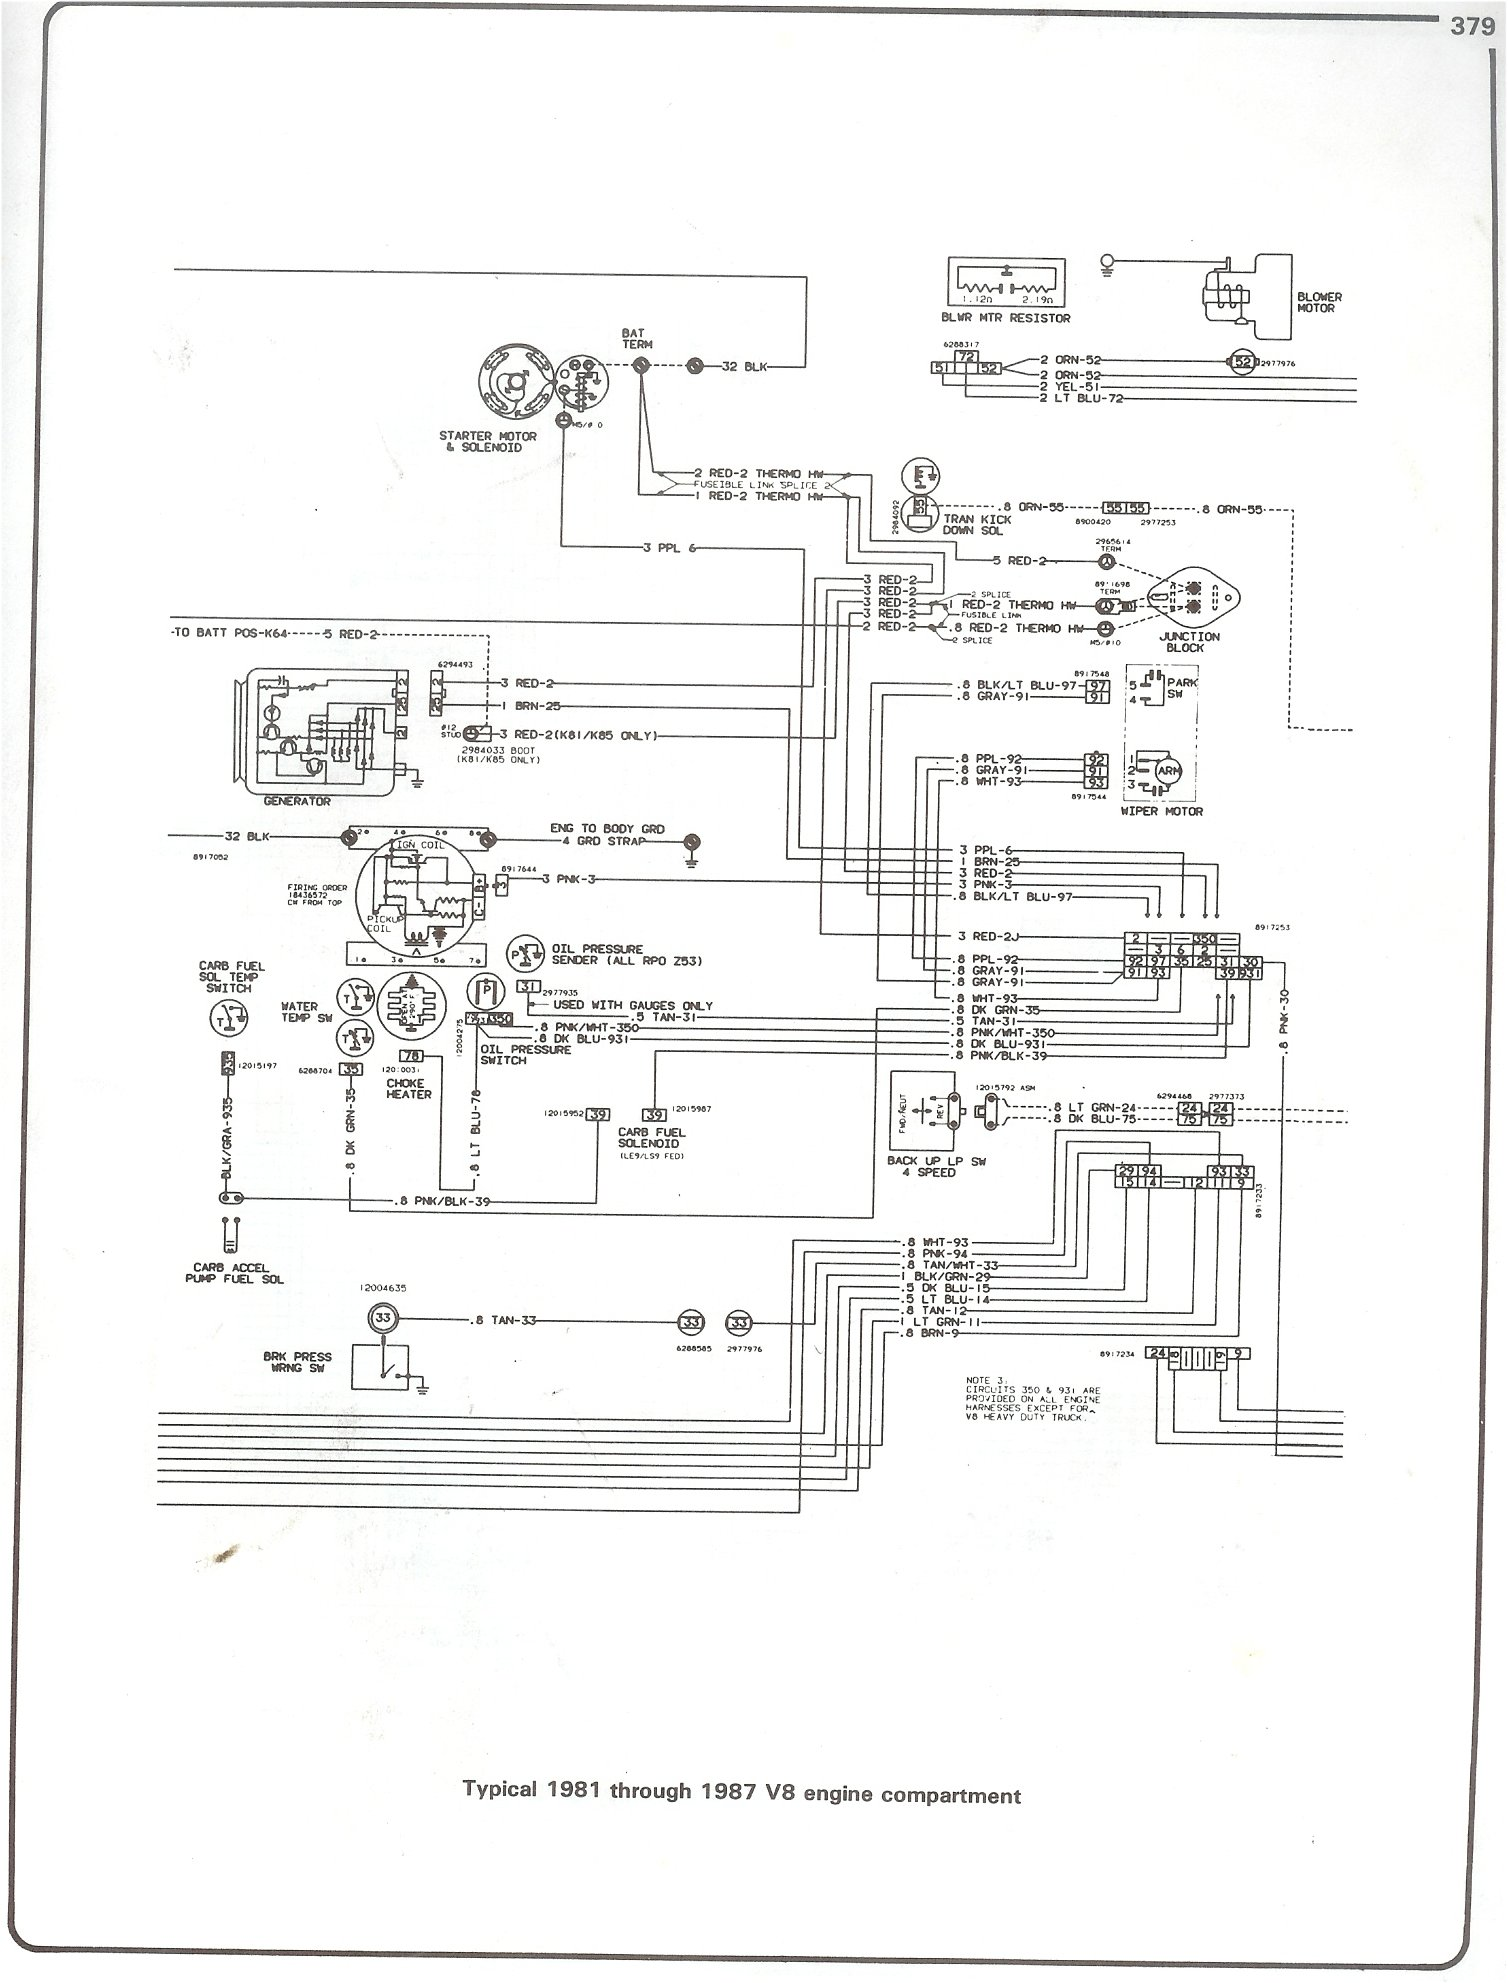 87 chevy r10 wiring harness wire center u2022 rh aktivagroup co 2006 GMC Sierra Wiring Diagram GMC Sierra Trailer Wiring Diagram